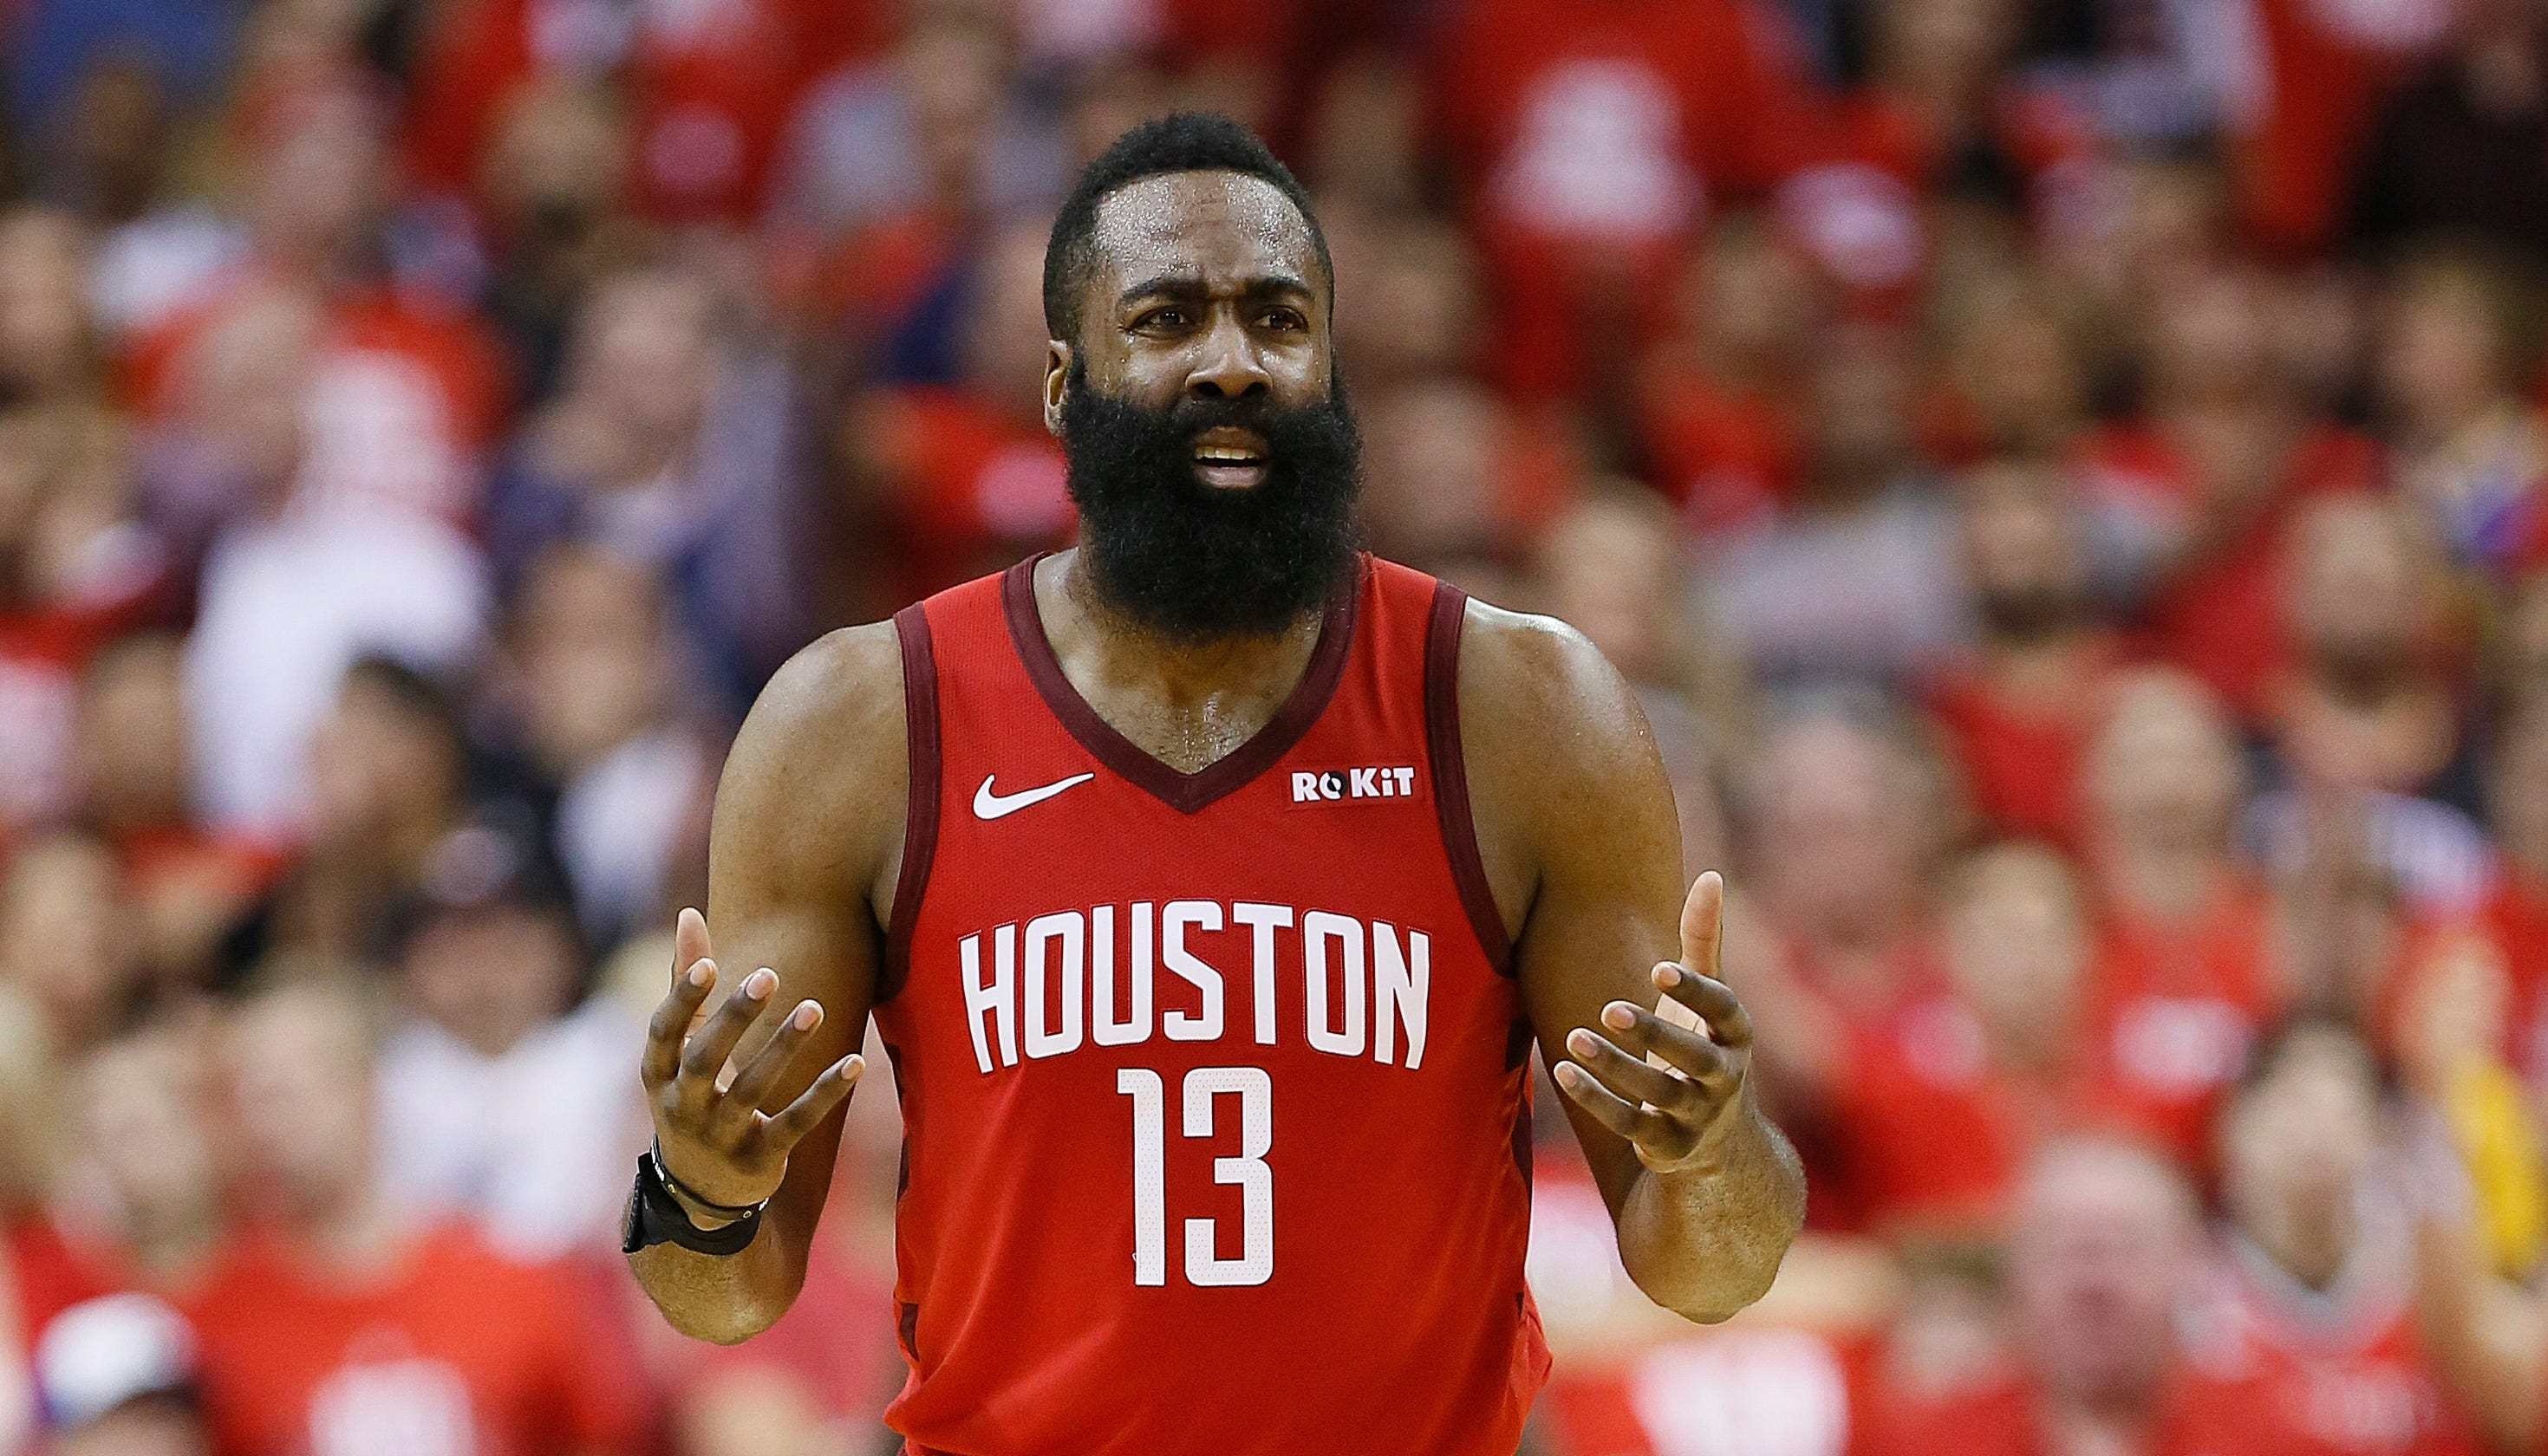 NBA playoffs: Houston, we have a problem  But will Rockets